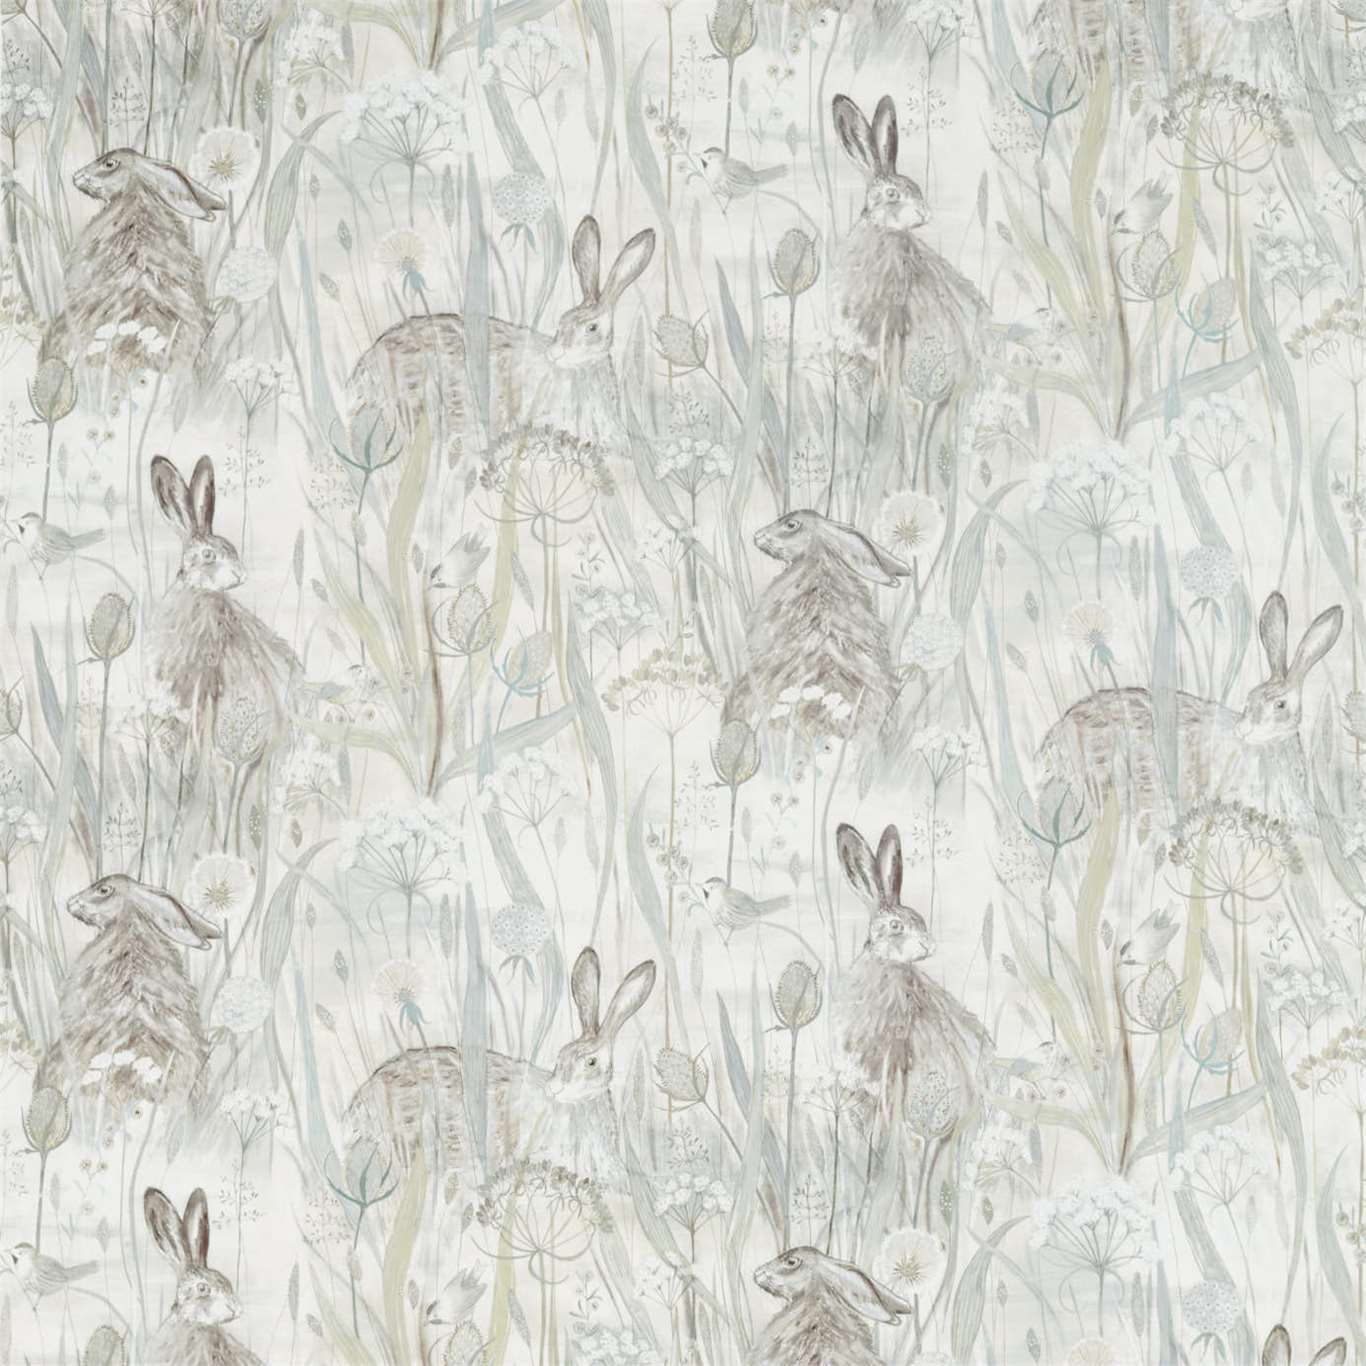 Dune Hares by SAN